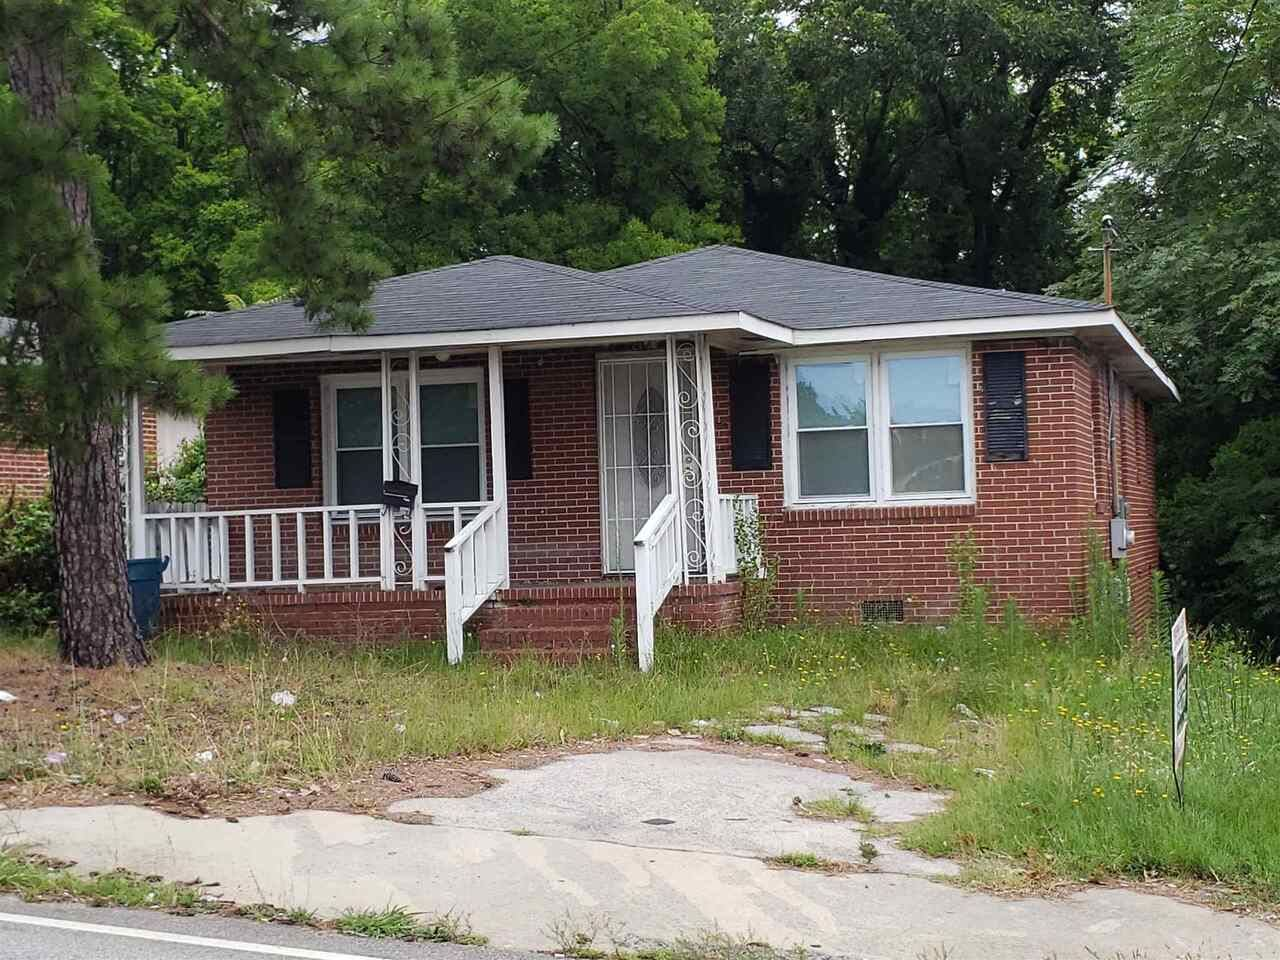 2149 & 2147 Mercer Univ Dr, Macon, GA 31204 - MLS#: 8860883